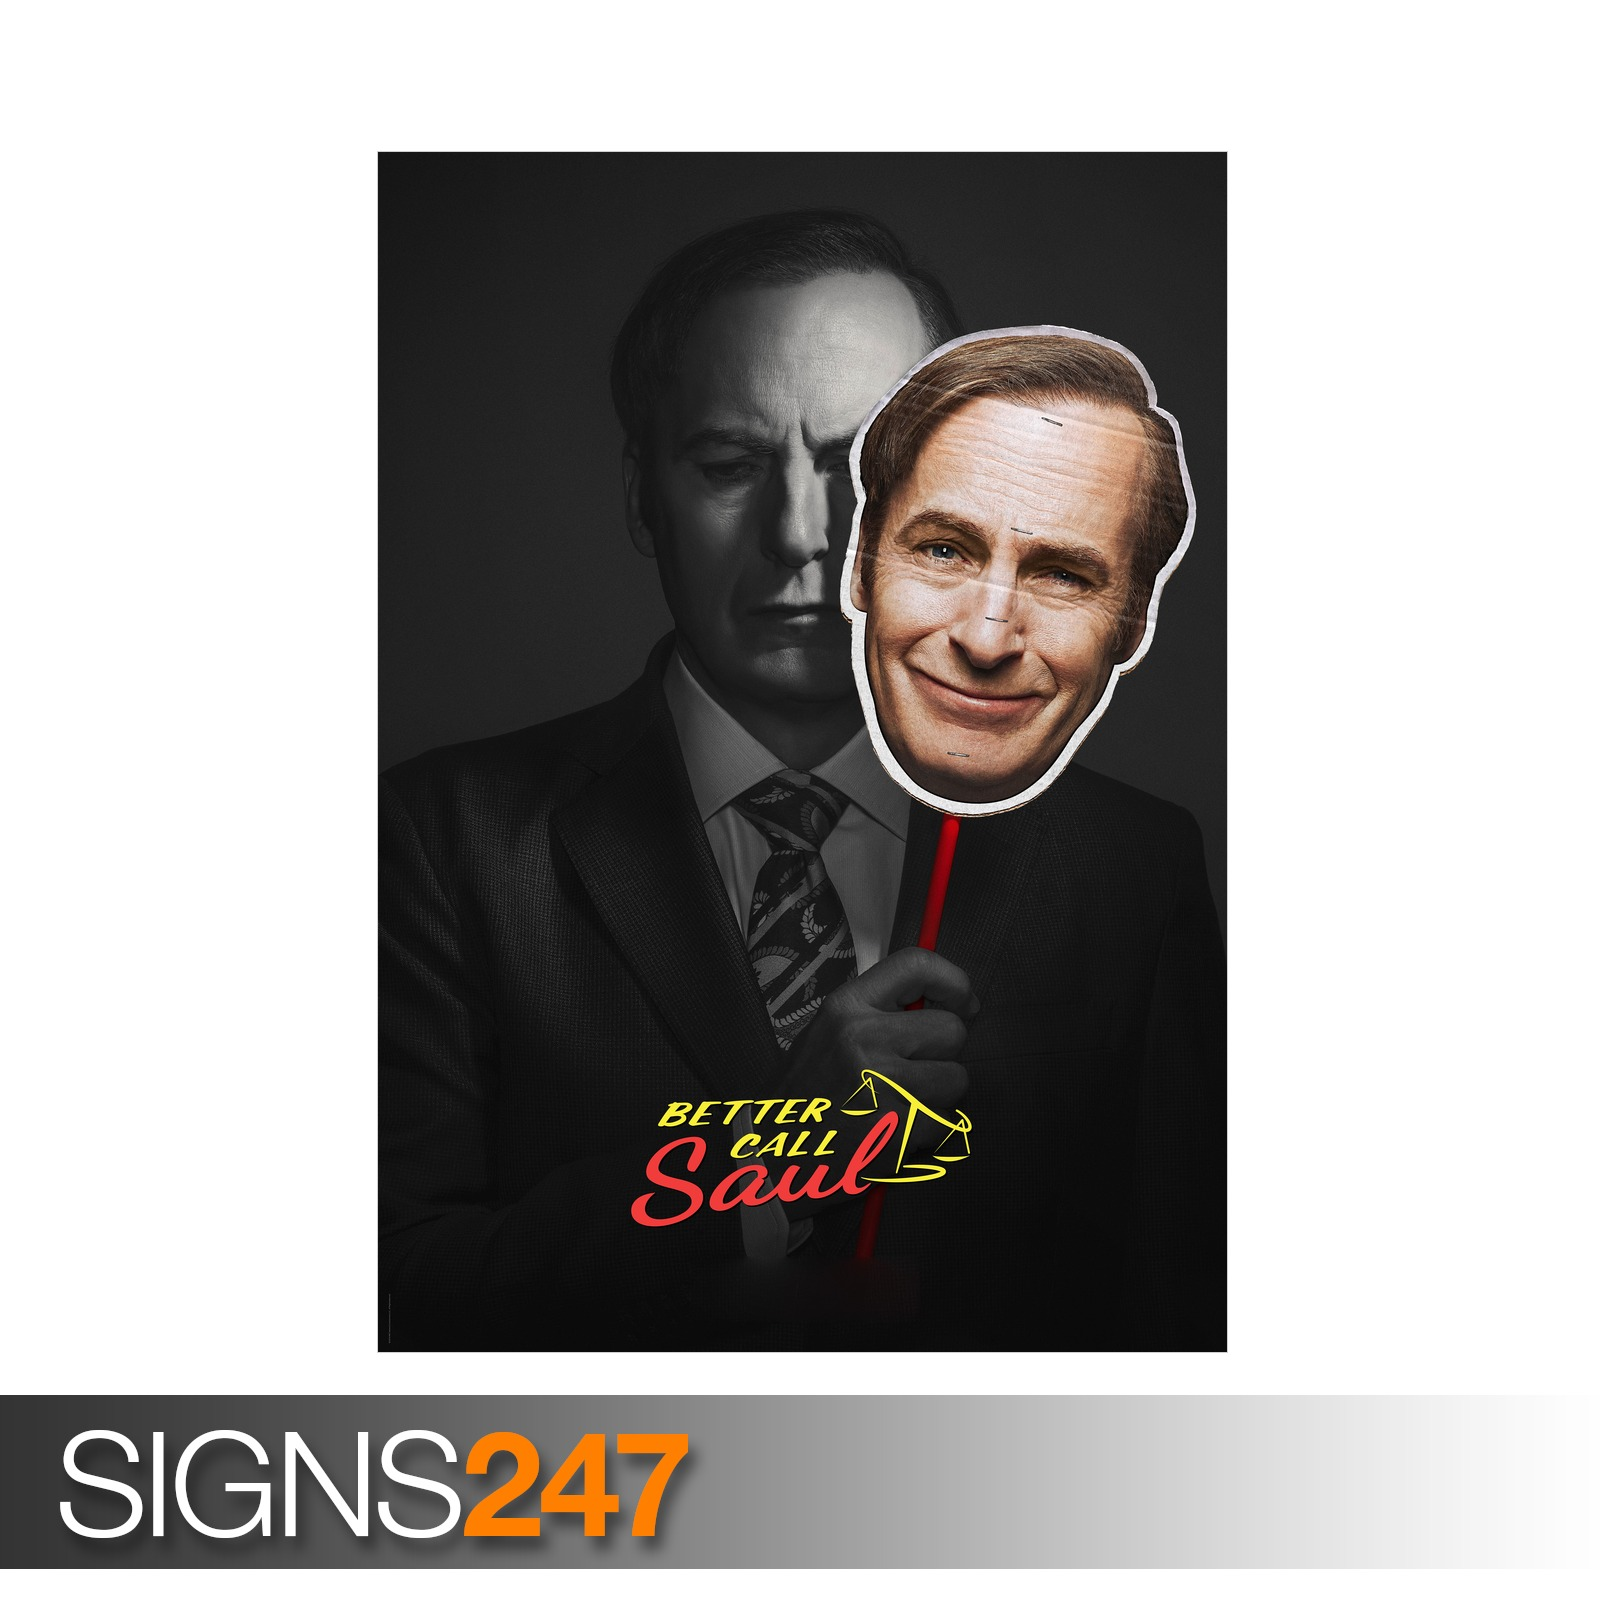 BETTER-CALL-SAUL-ZZ029-MOVIE-POSTER-Photo-Picture-Poster-Print-Art-A0-to-A4